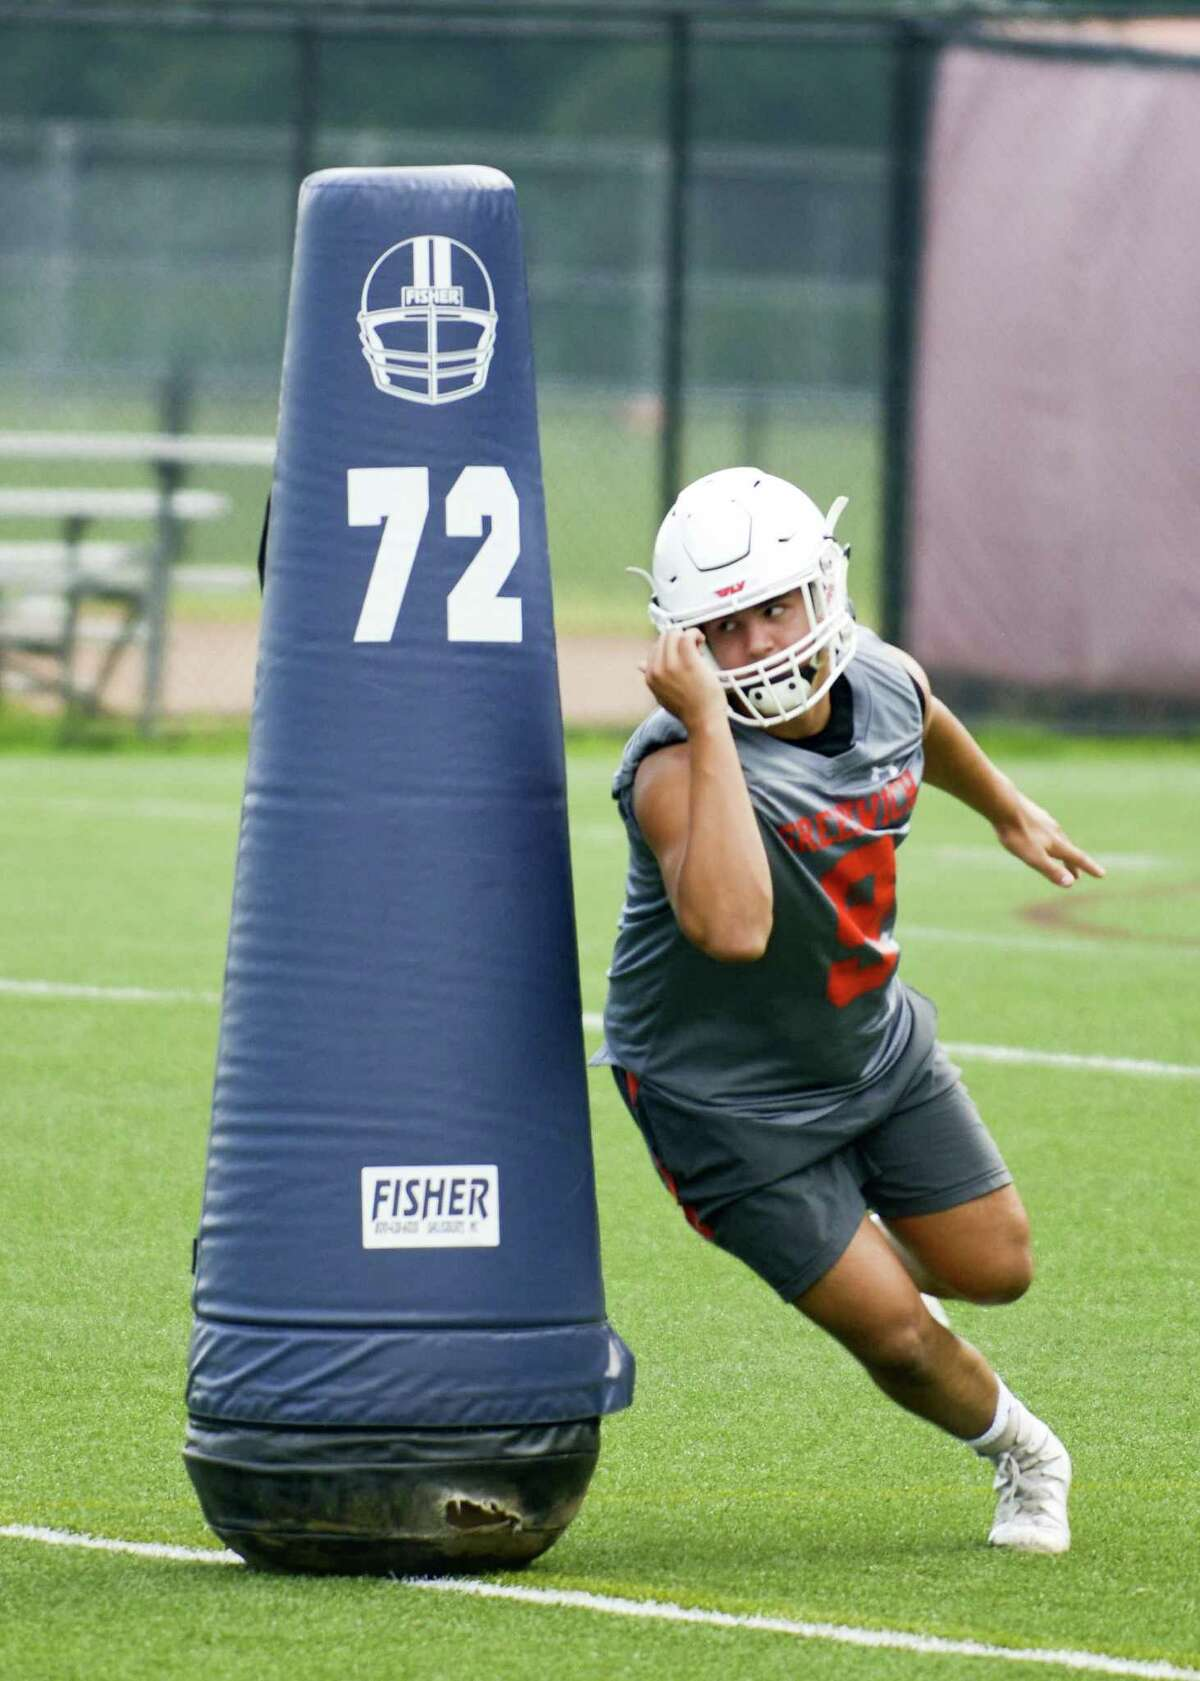 Defensive end Emilio Camou runs around a blocking dummy during a conditioning drill.